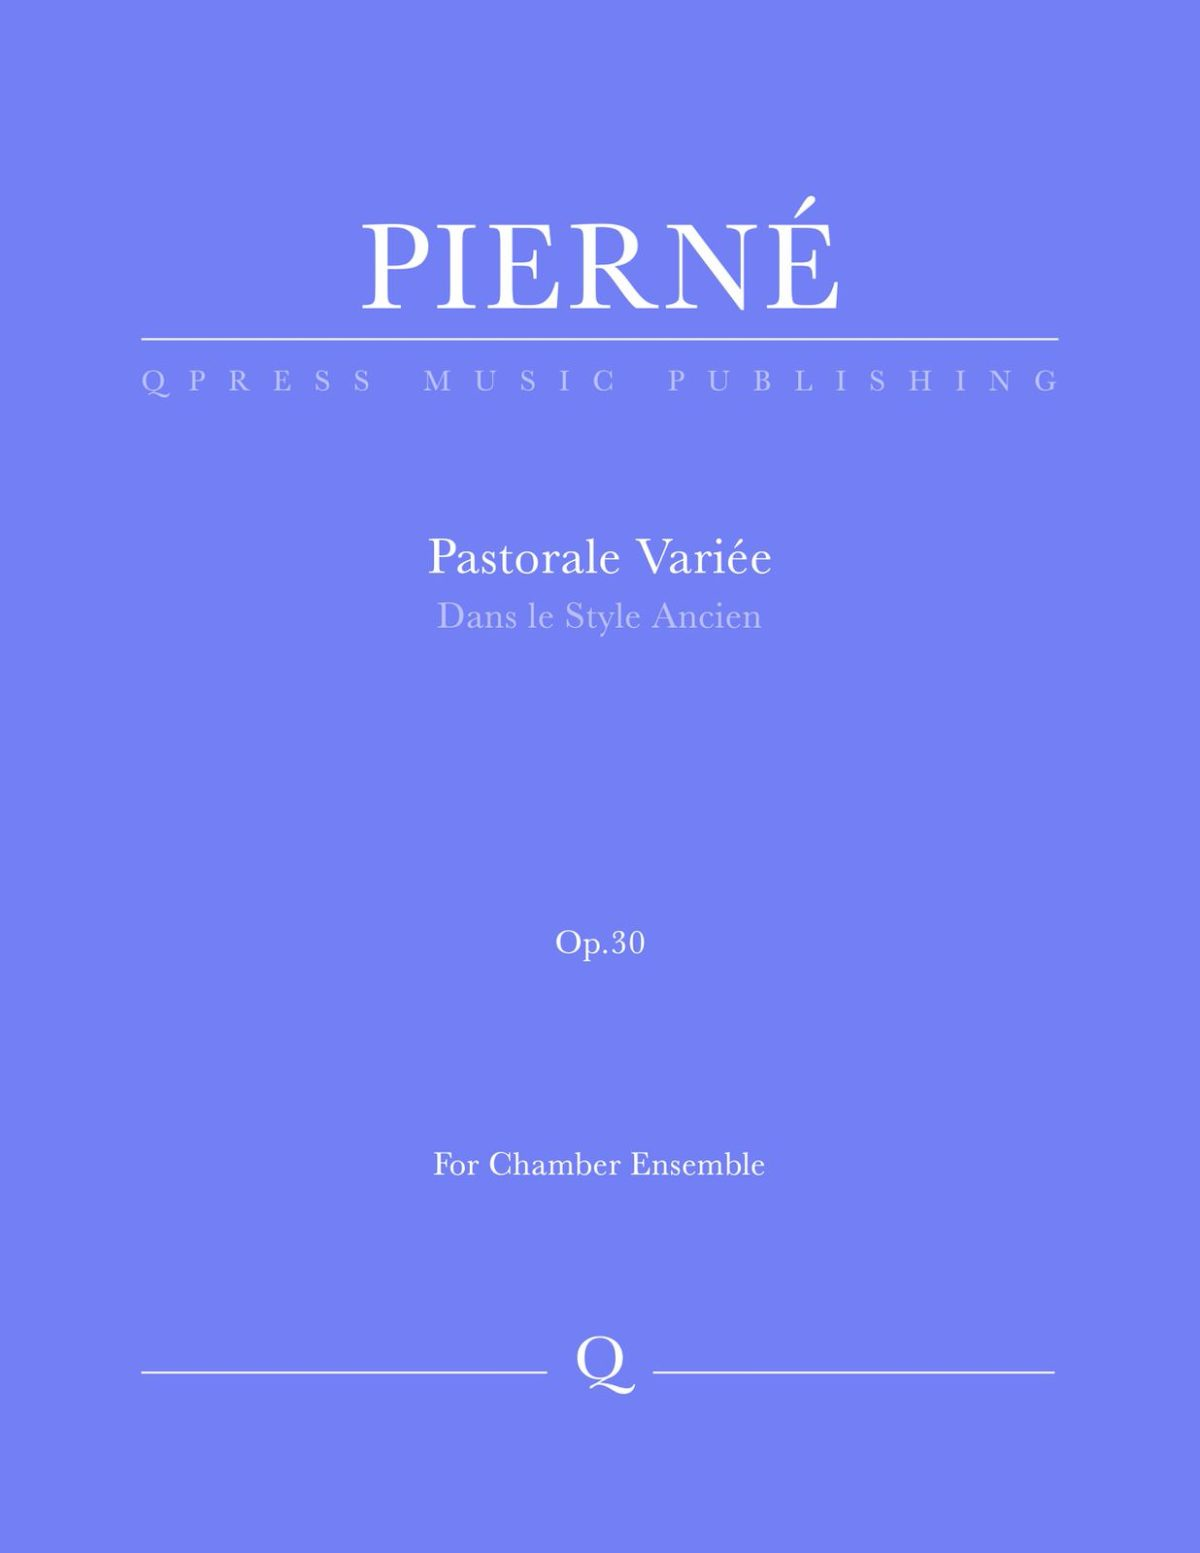 Pierné, Pastorale Variée Parts and Score-p01